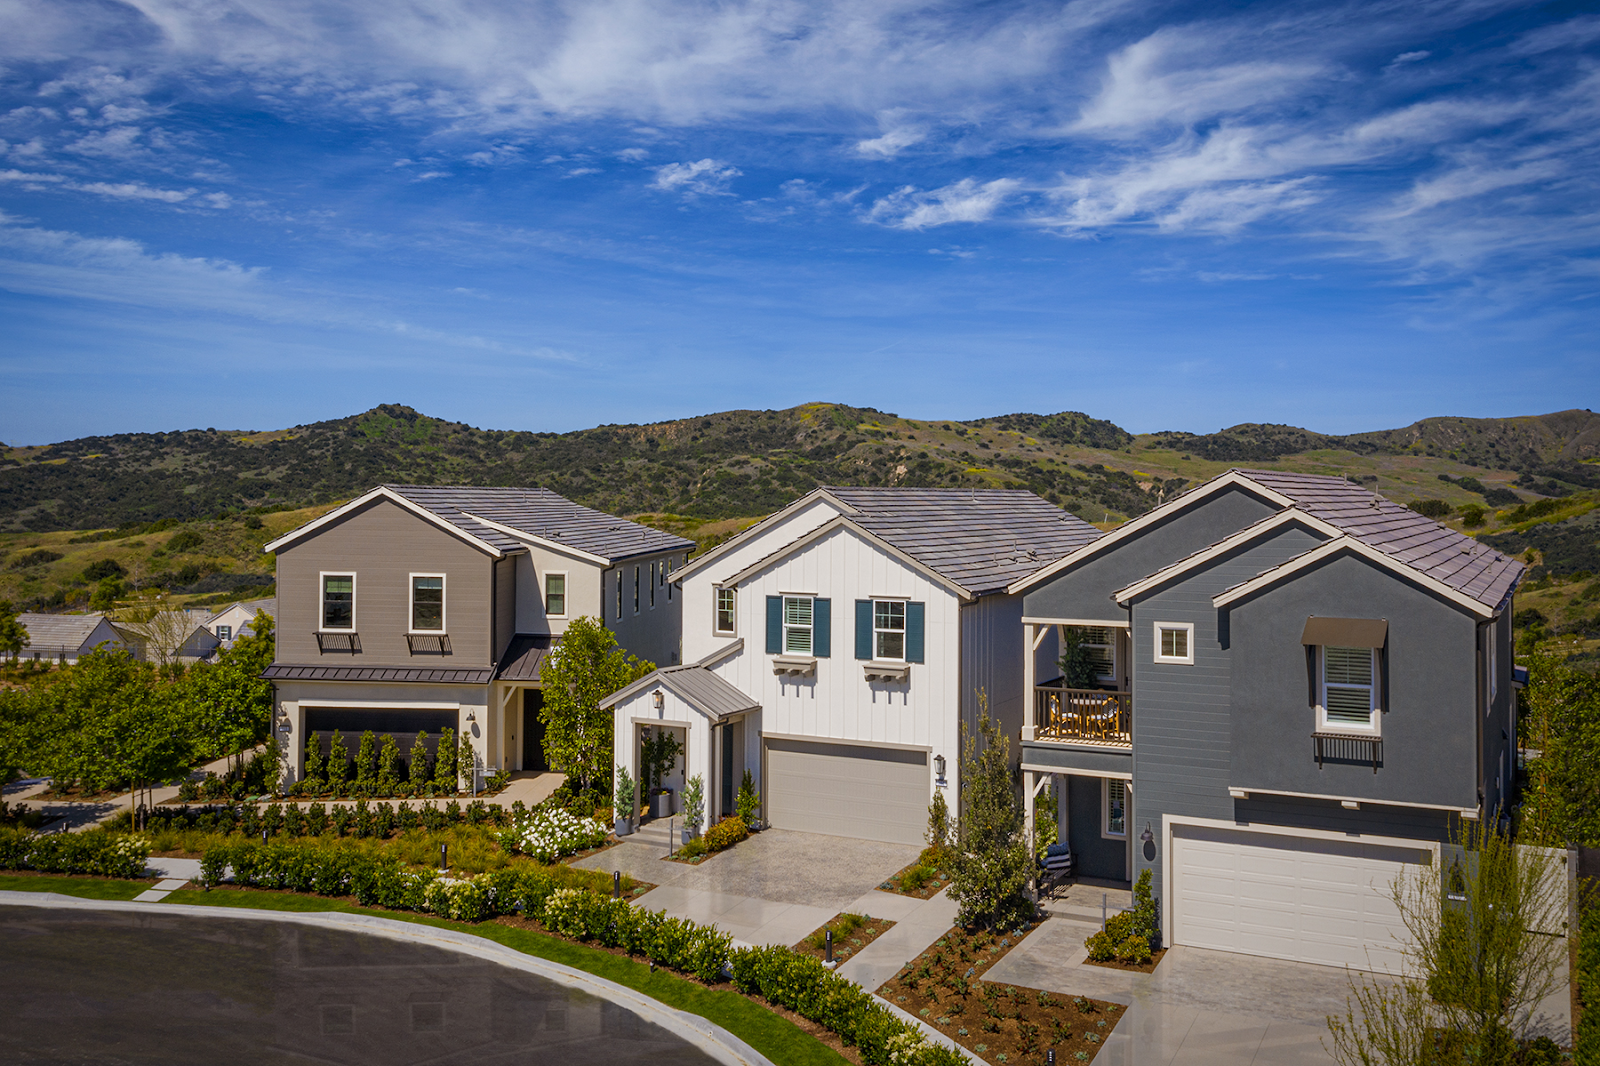 Real-estate company refinances property with bitcoin-backed loan